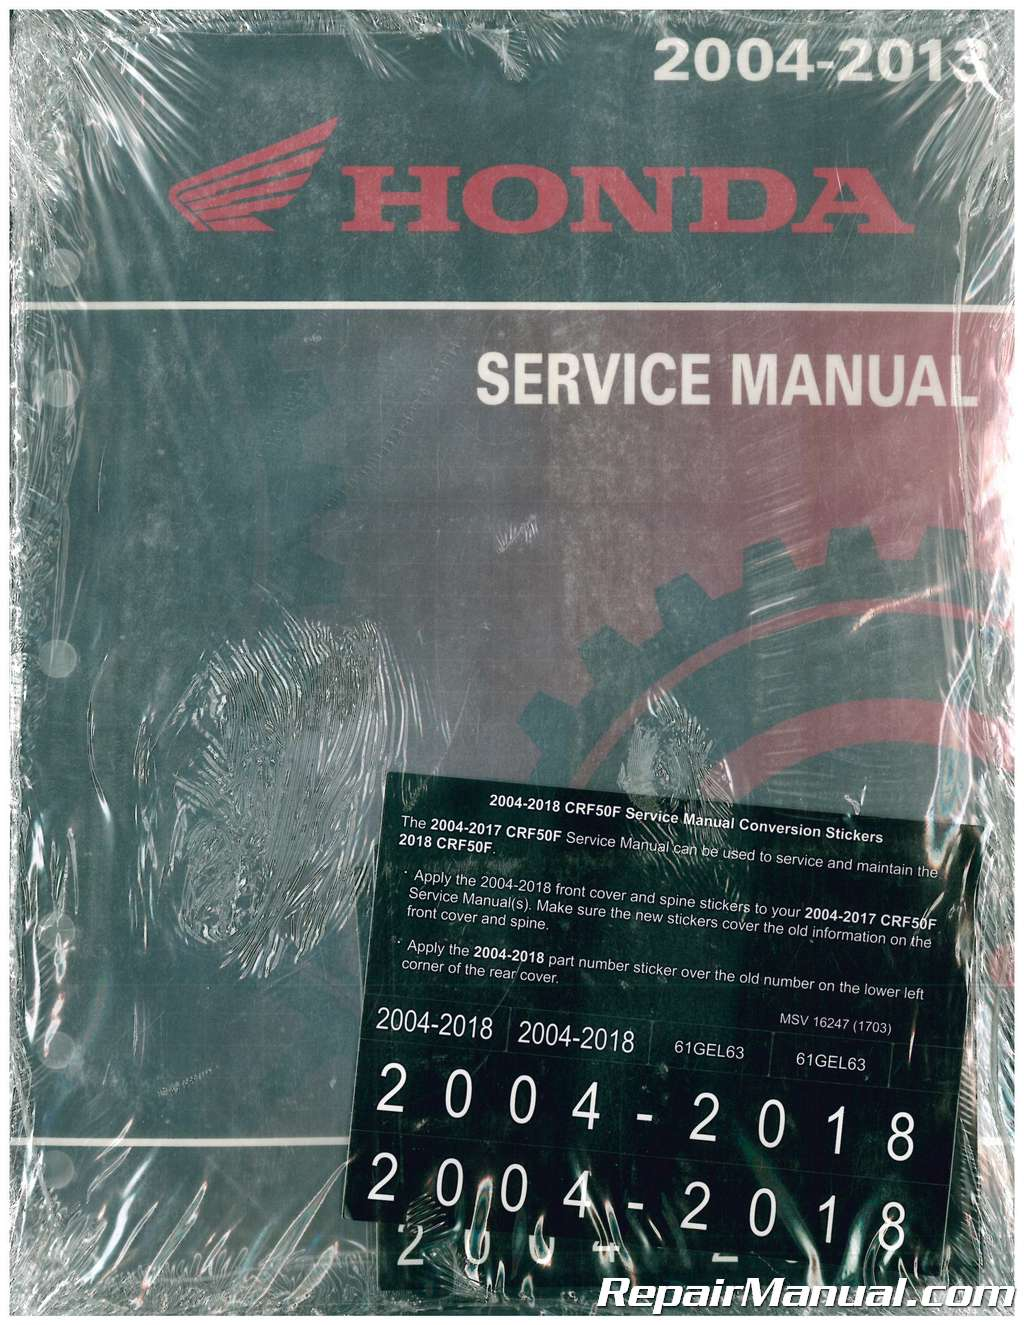 honda motorcycle service manual pdf